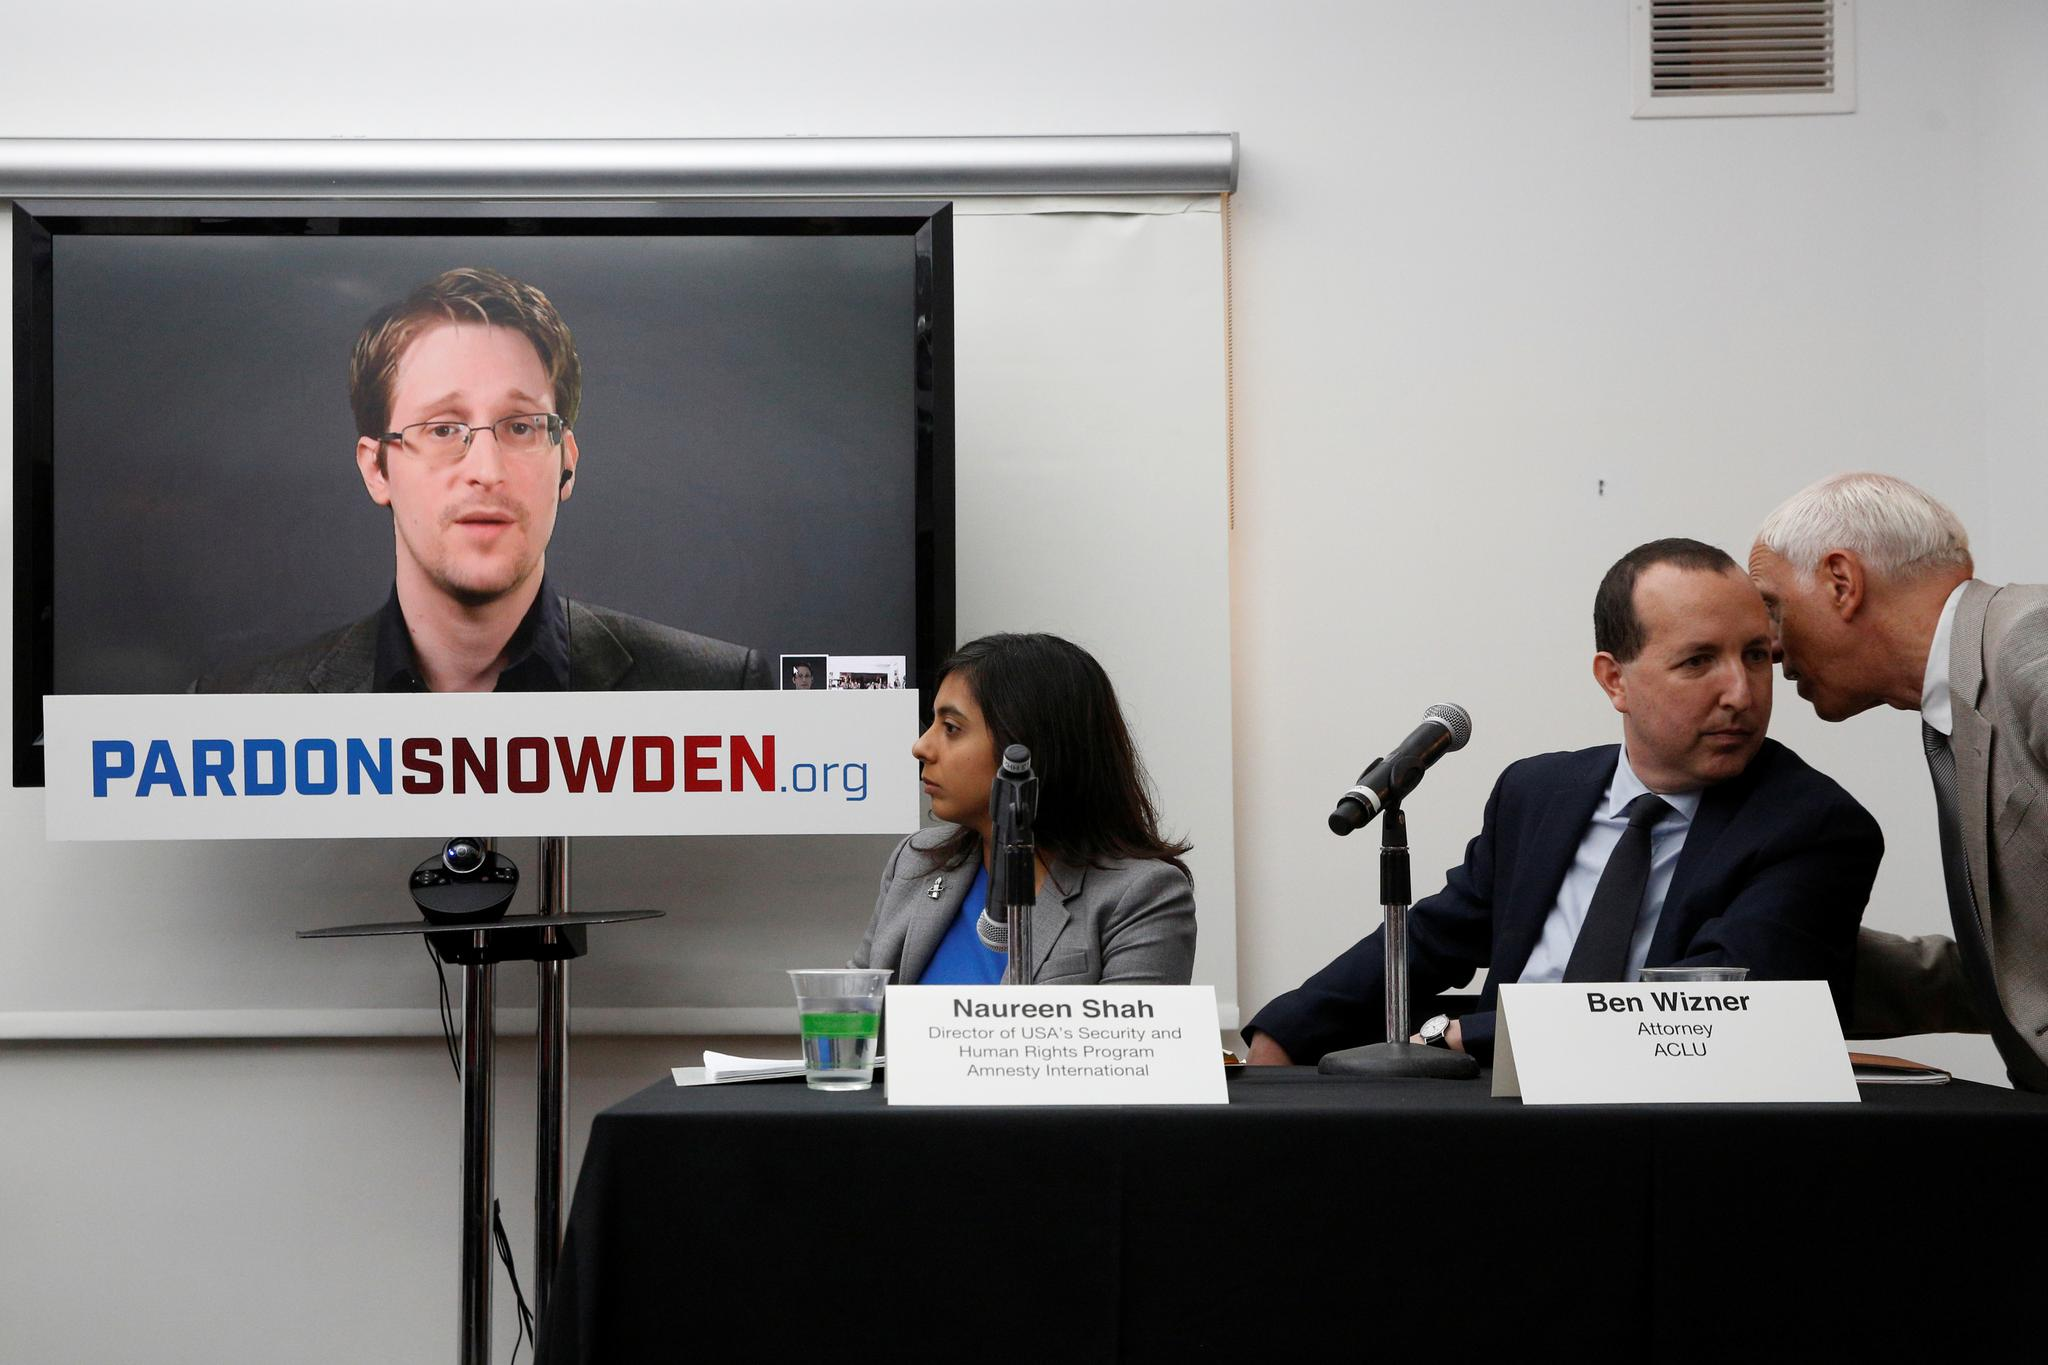 Edward Snowden speaks via video link during a news conference in New York City, on September 14.